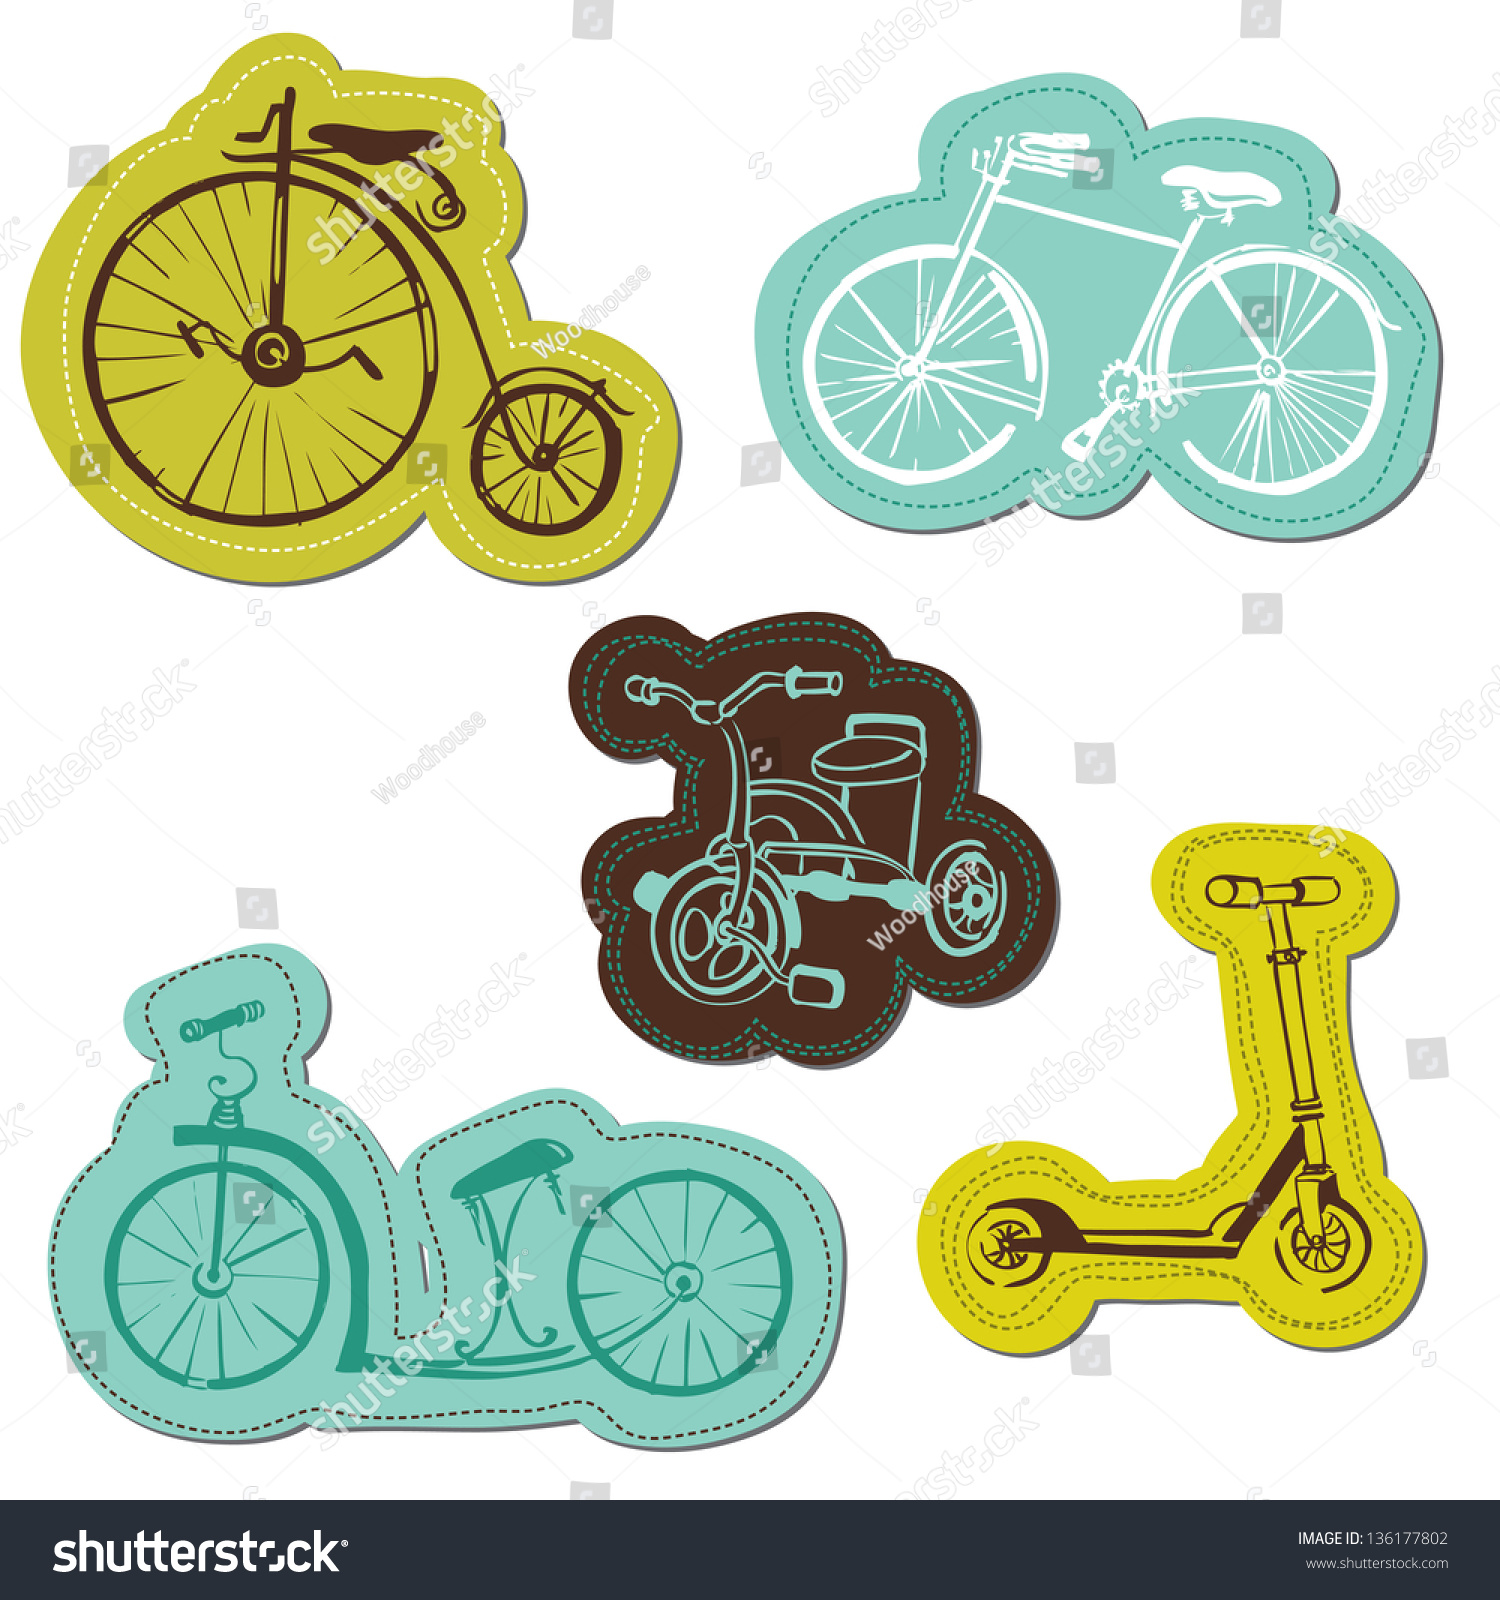 Bike sticker design images - Set Of Baby Bike Stickers For Design And Scrapbook In Vector